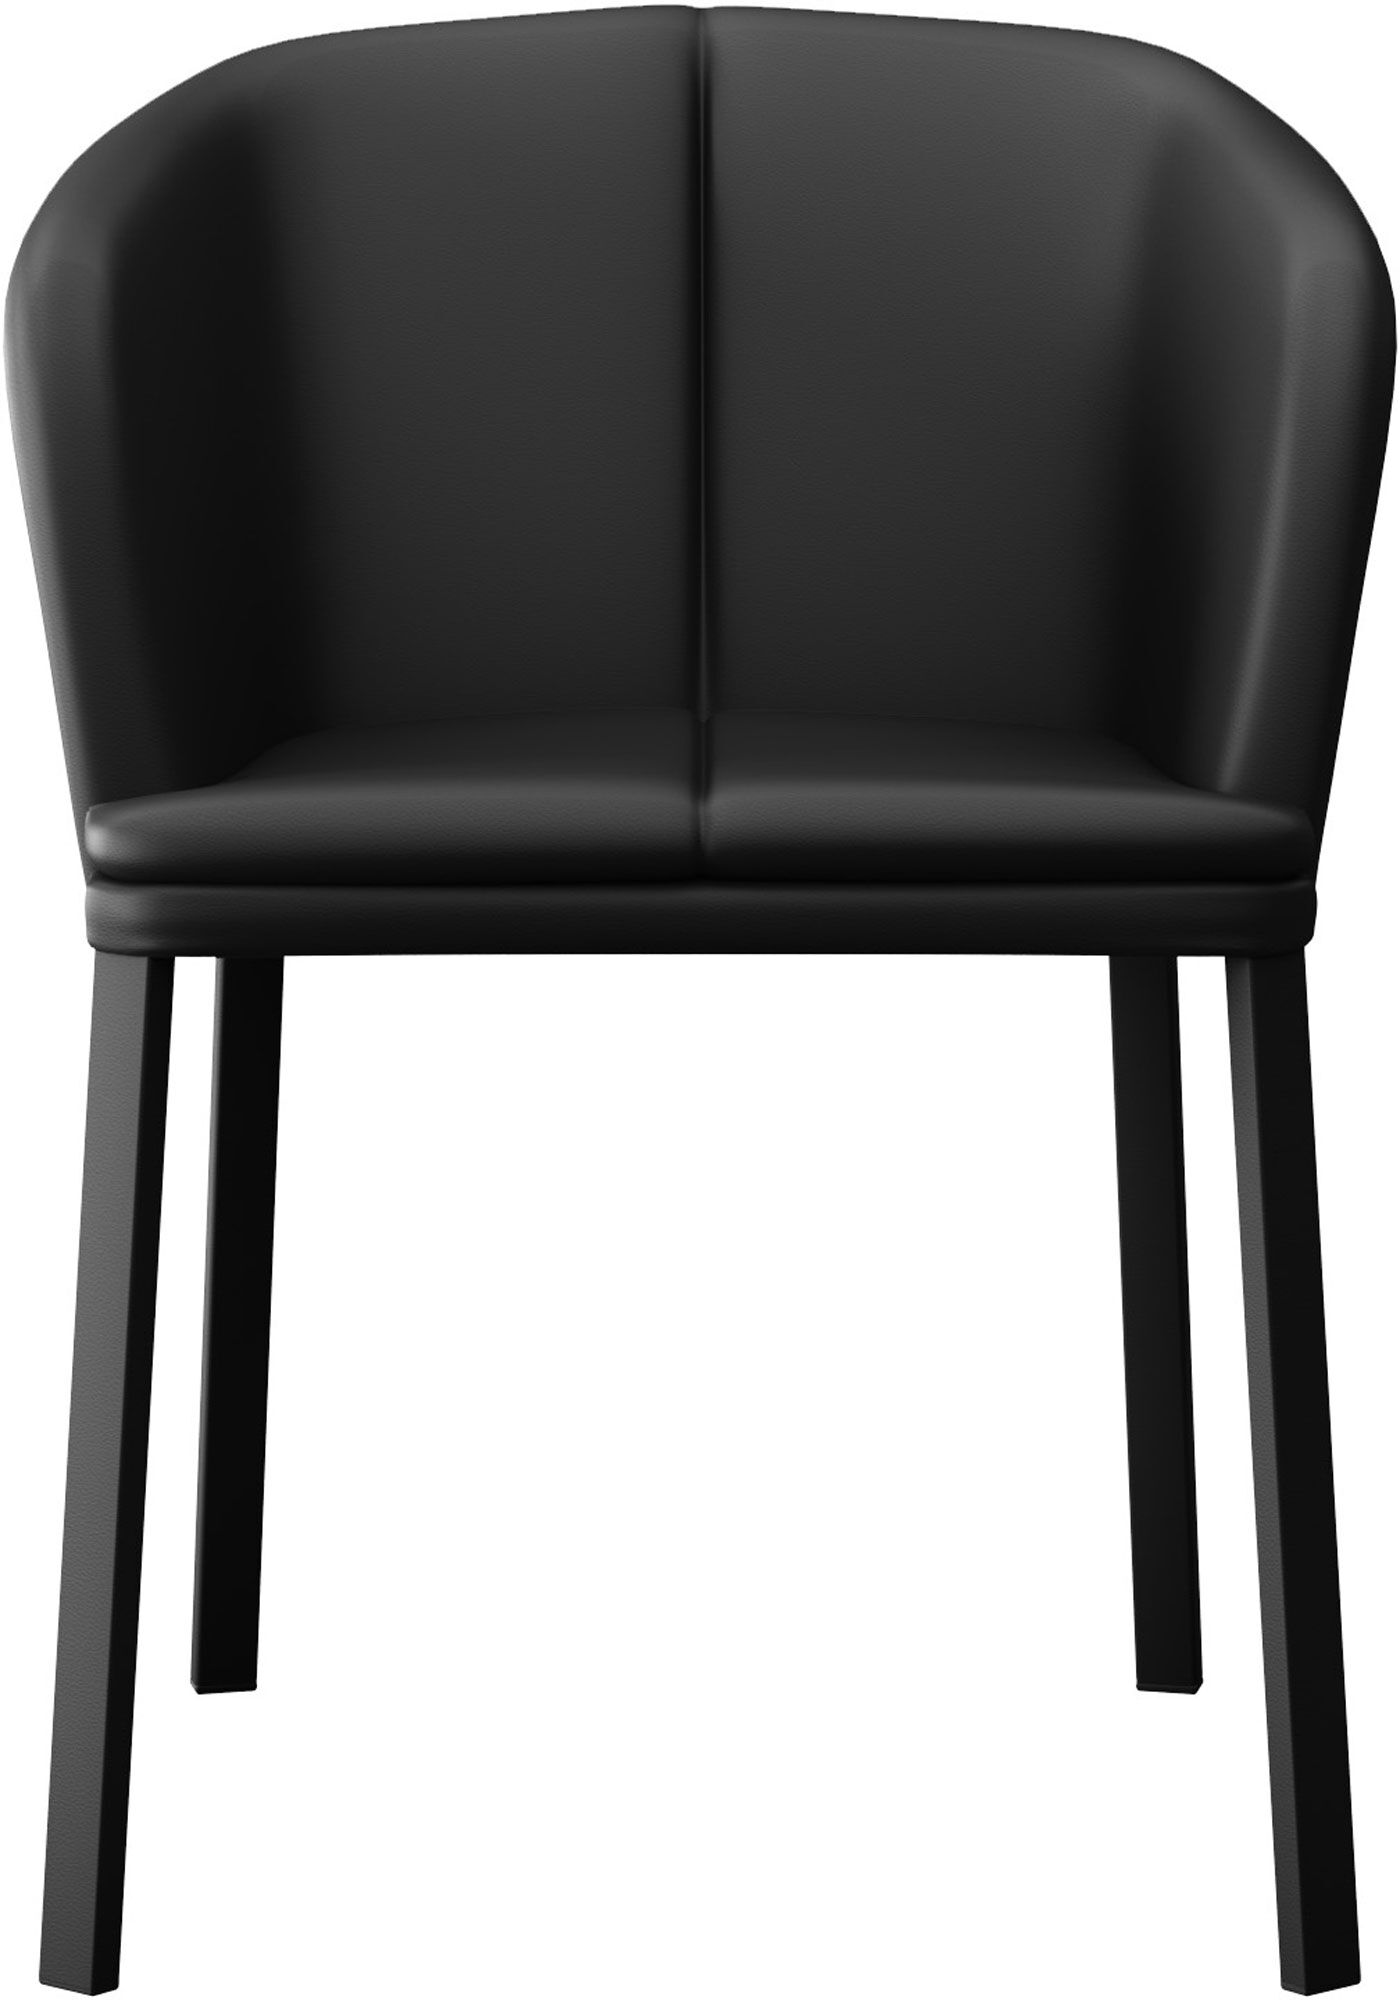 Como Genuine Leather Upholstered Dining Chair Finish: Black